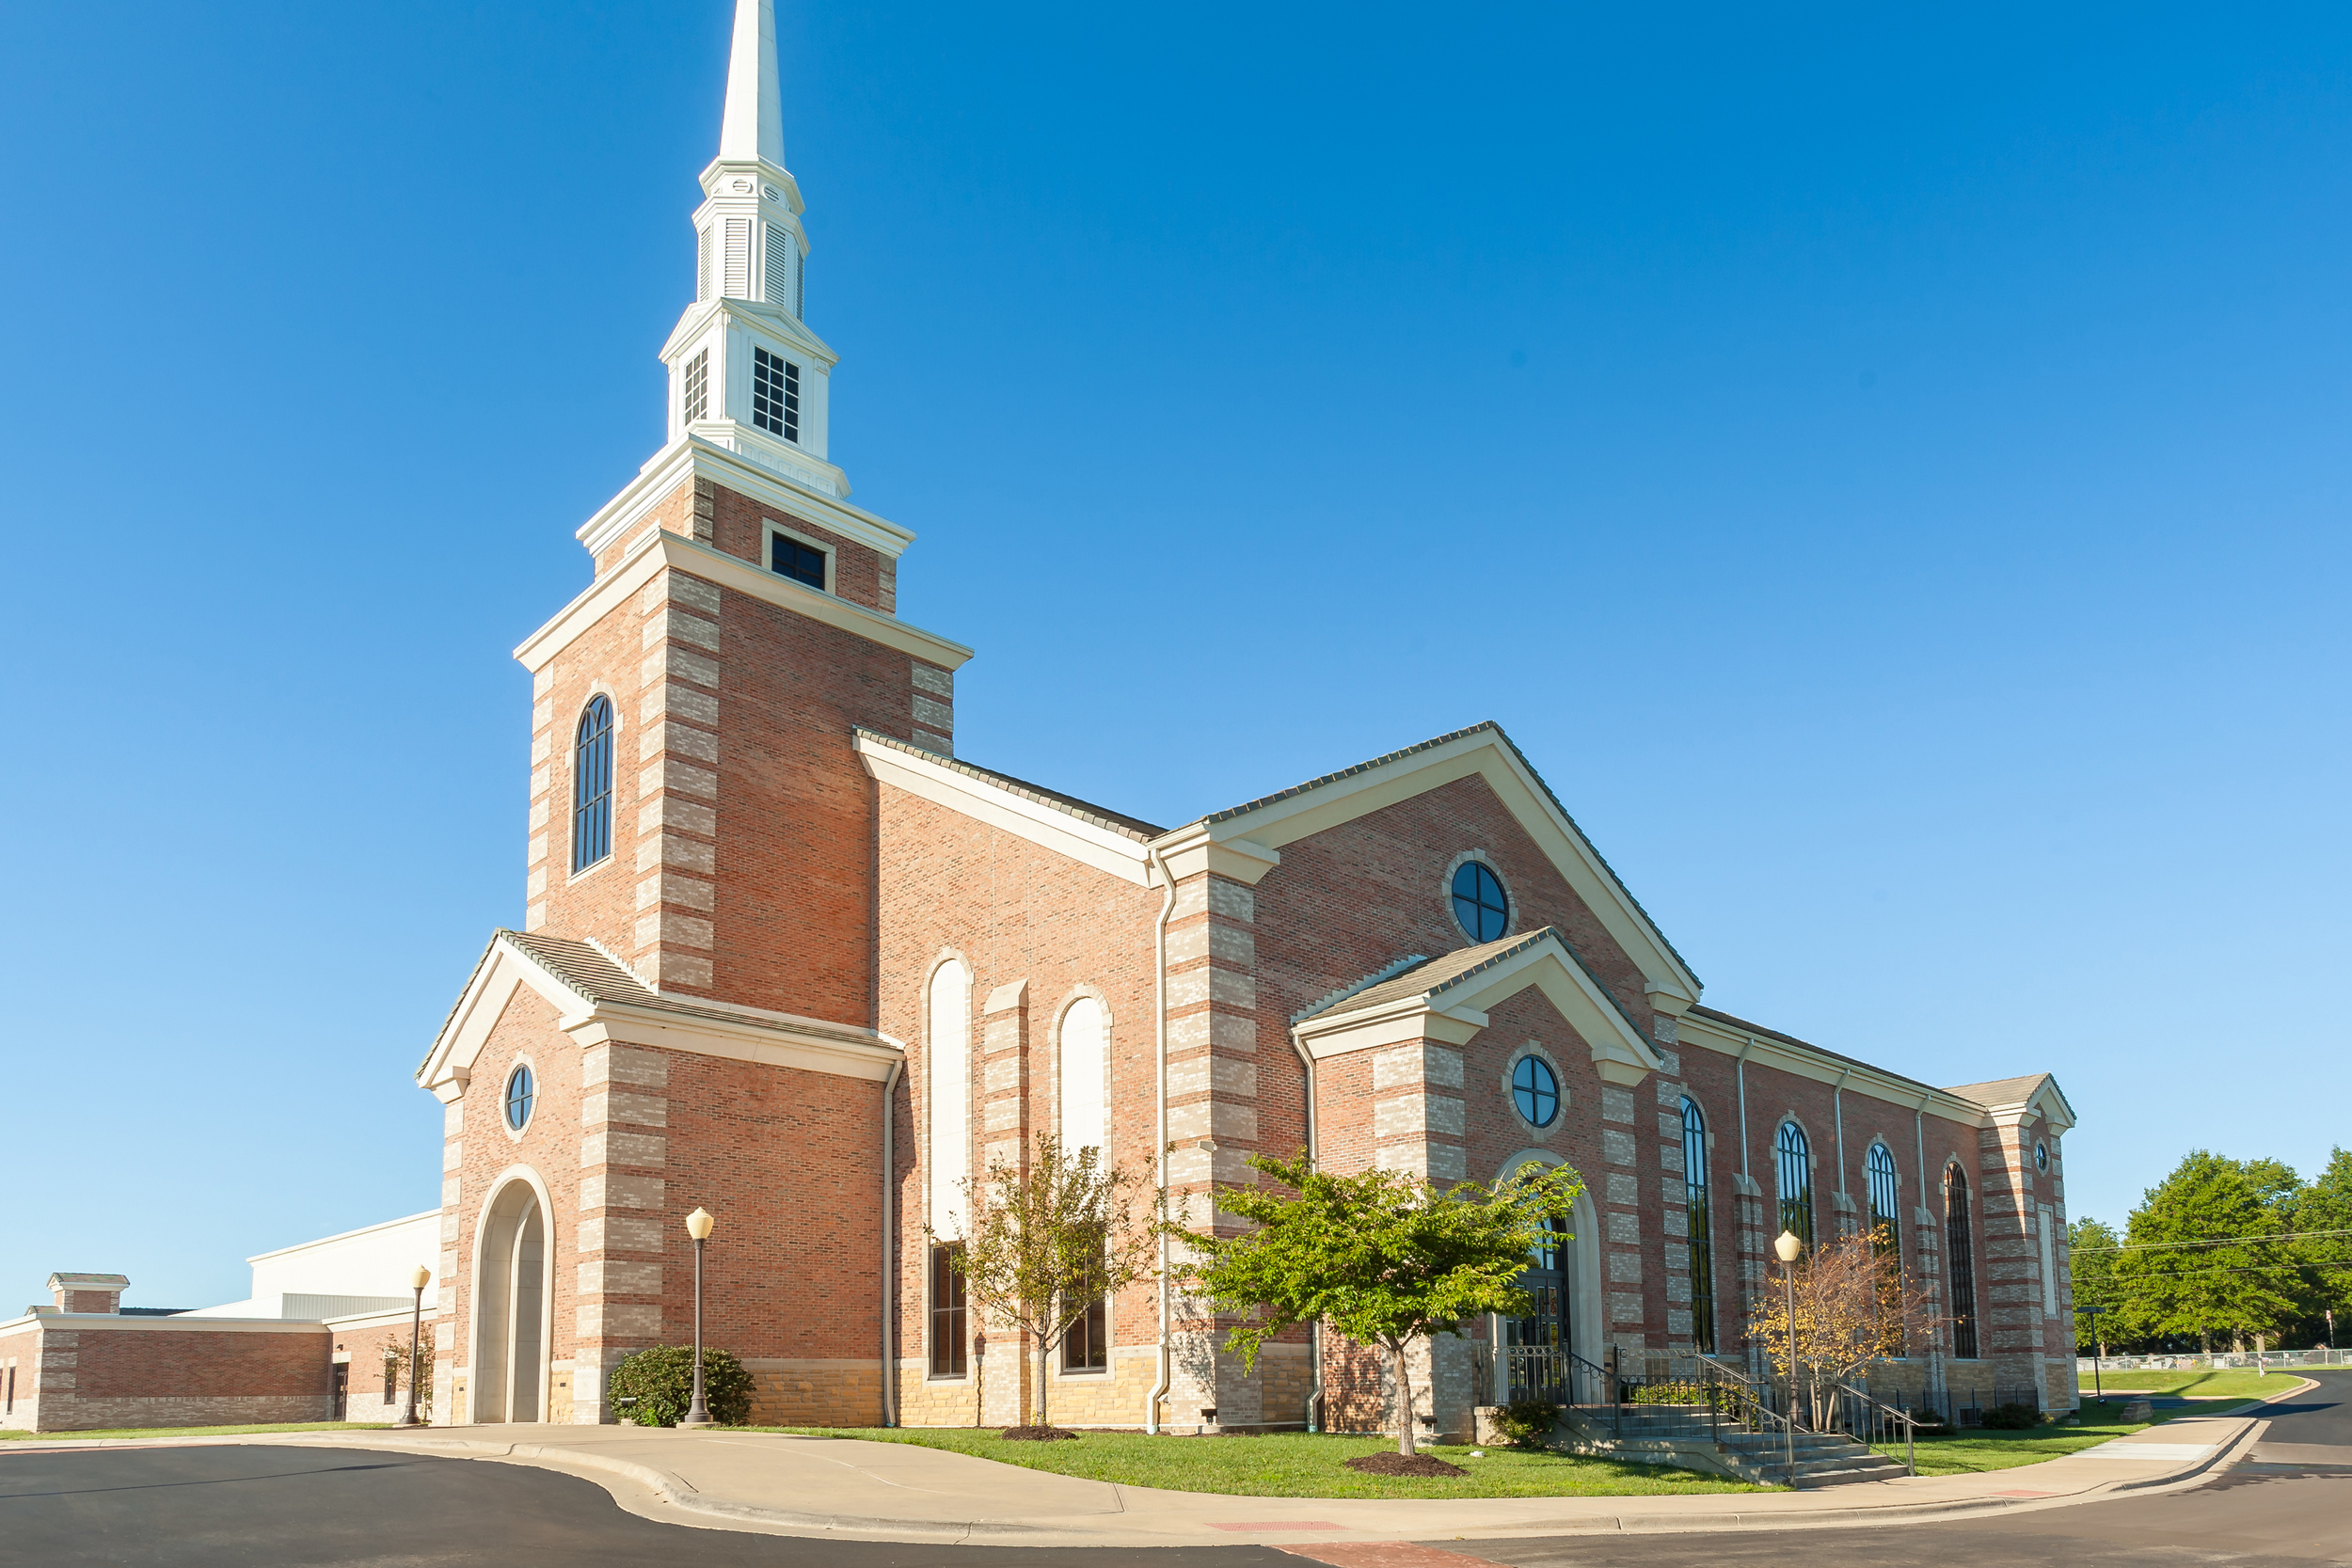 Redeemer Presbyterian Church in Overland Park